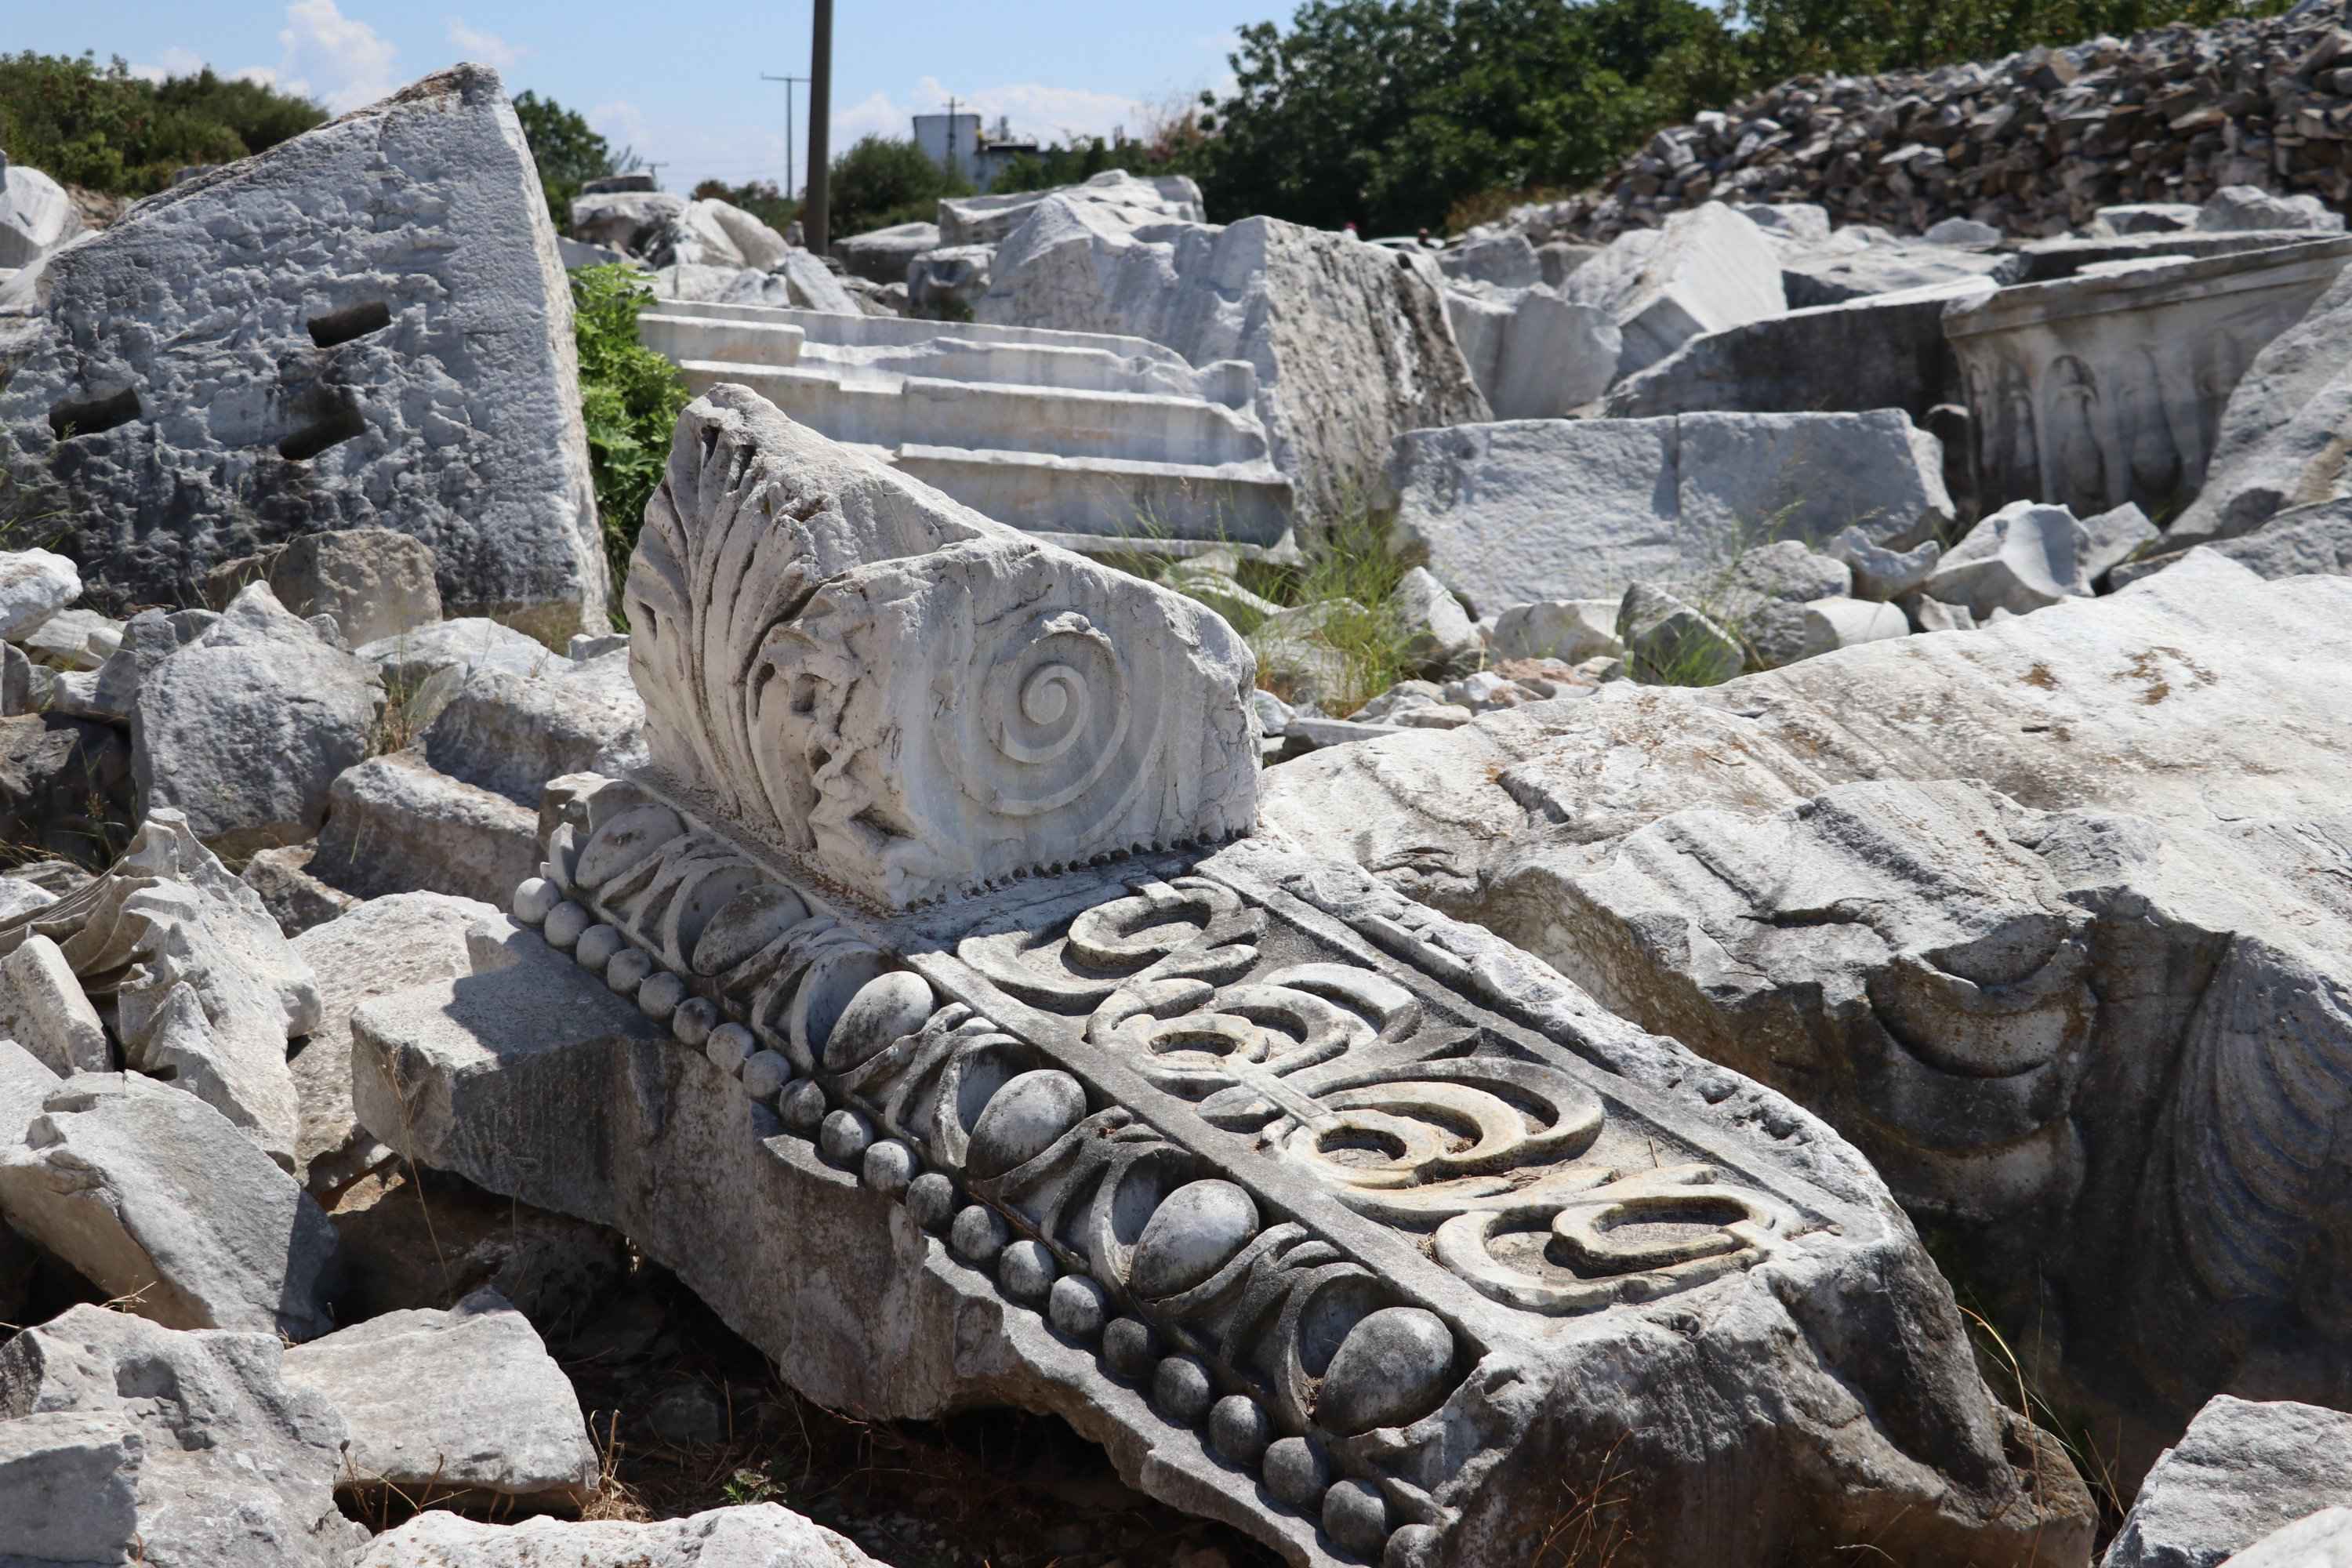 A stone part of the relief arch of the temple founded at the excavation site, Balıkesir province, western Turkey, Sept. 2, 2020. (AA PHOTO)